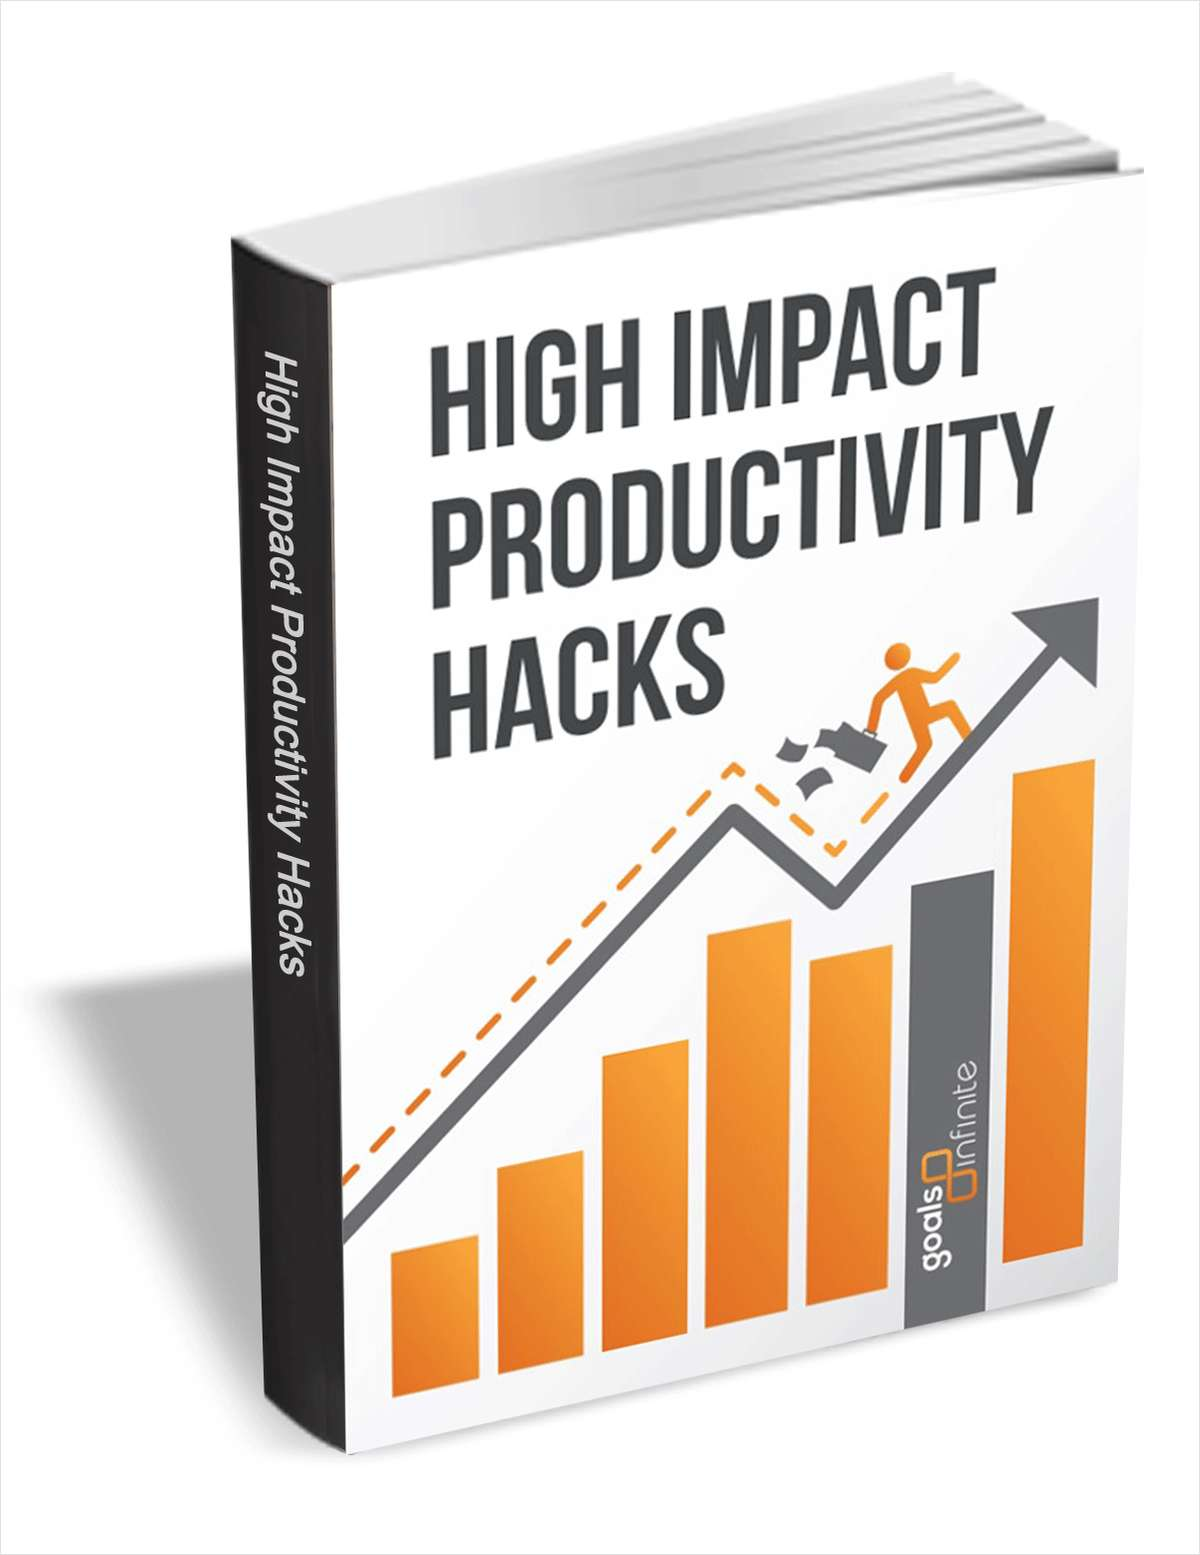 High Impact Productivity Hacks